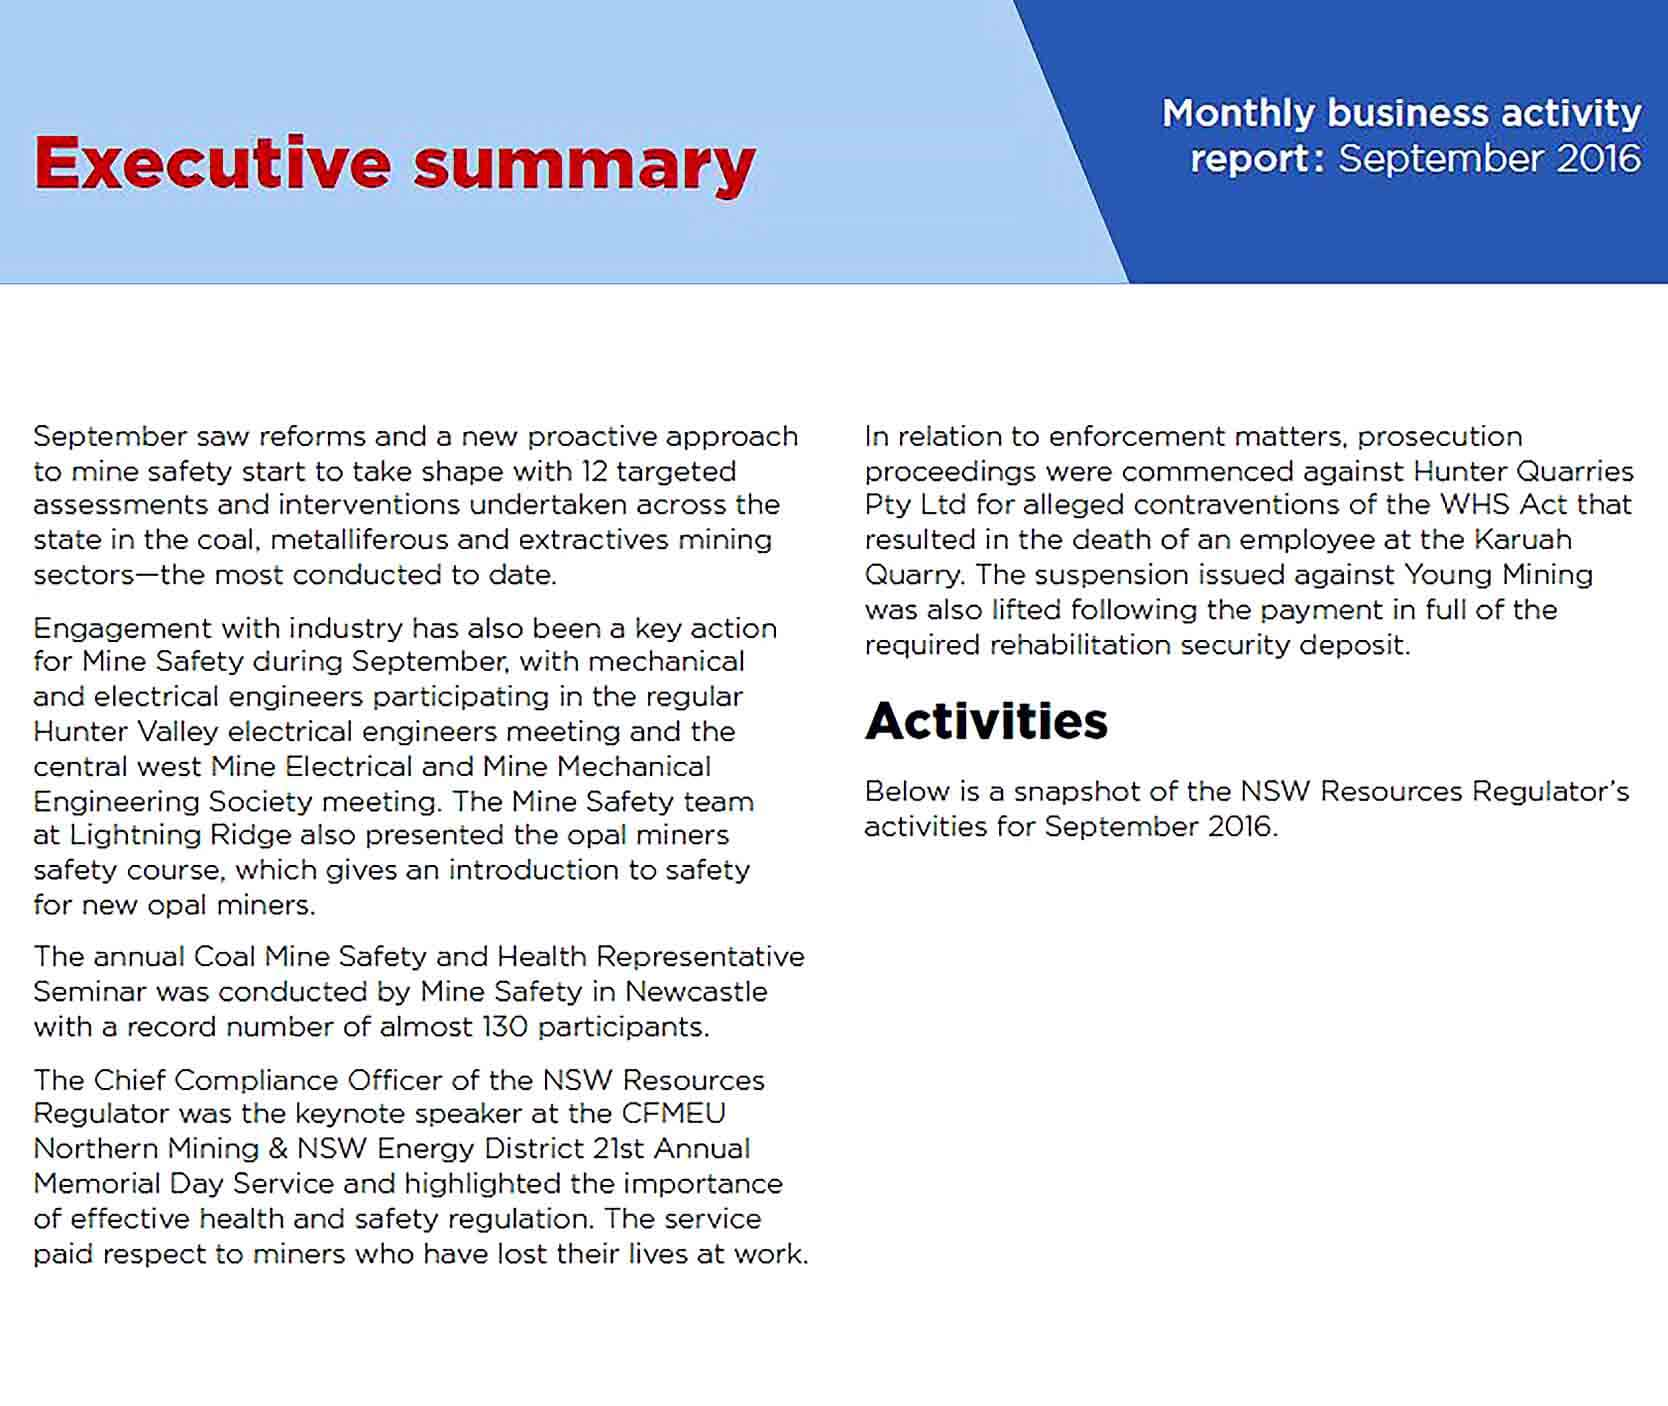 Sample Monthly Business Activity Report Template